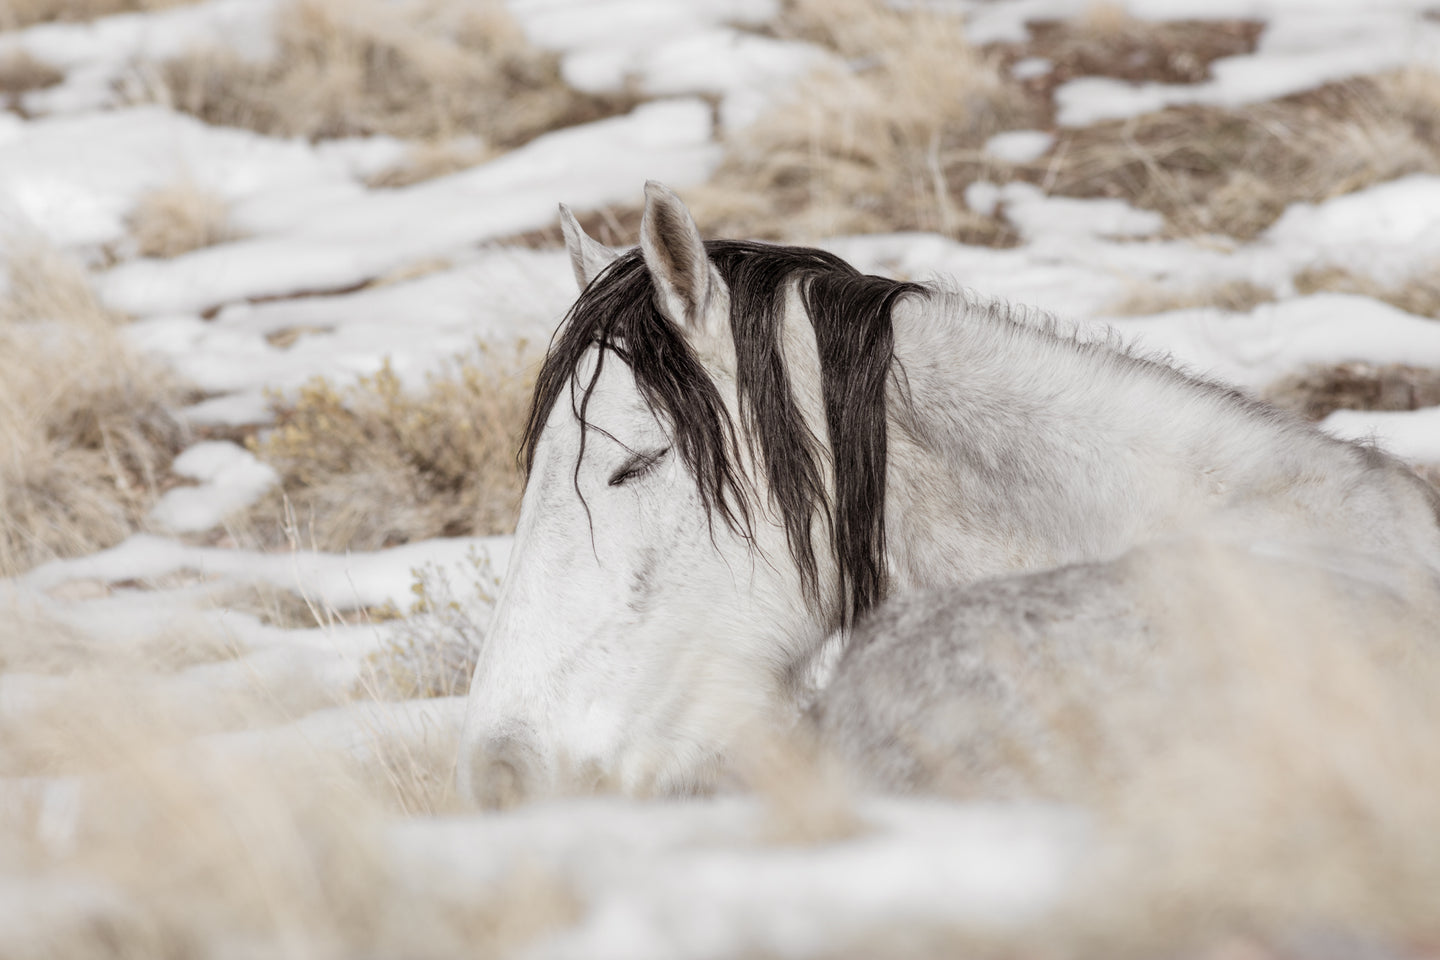 A Warm Blanket of Snow, Utah Mare, 2019